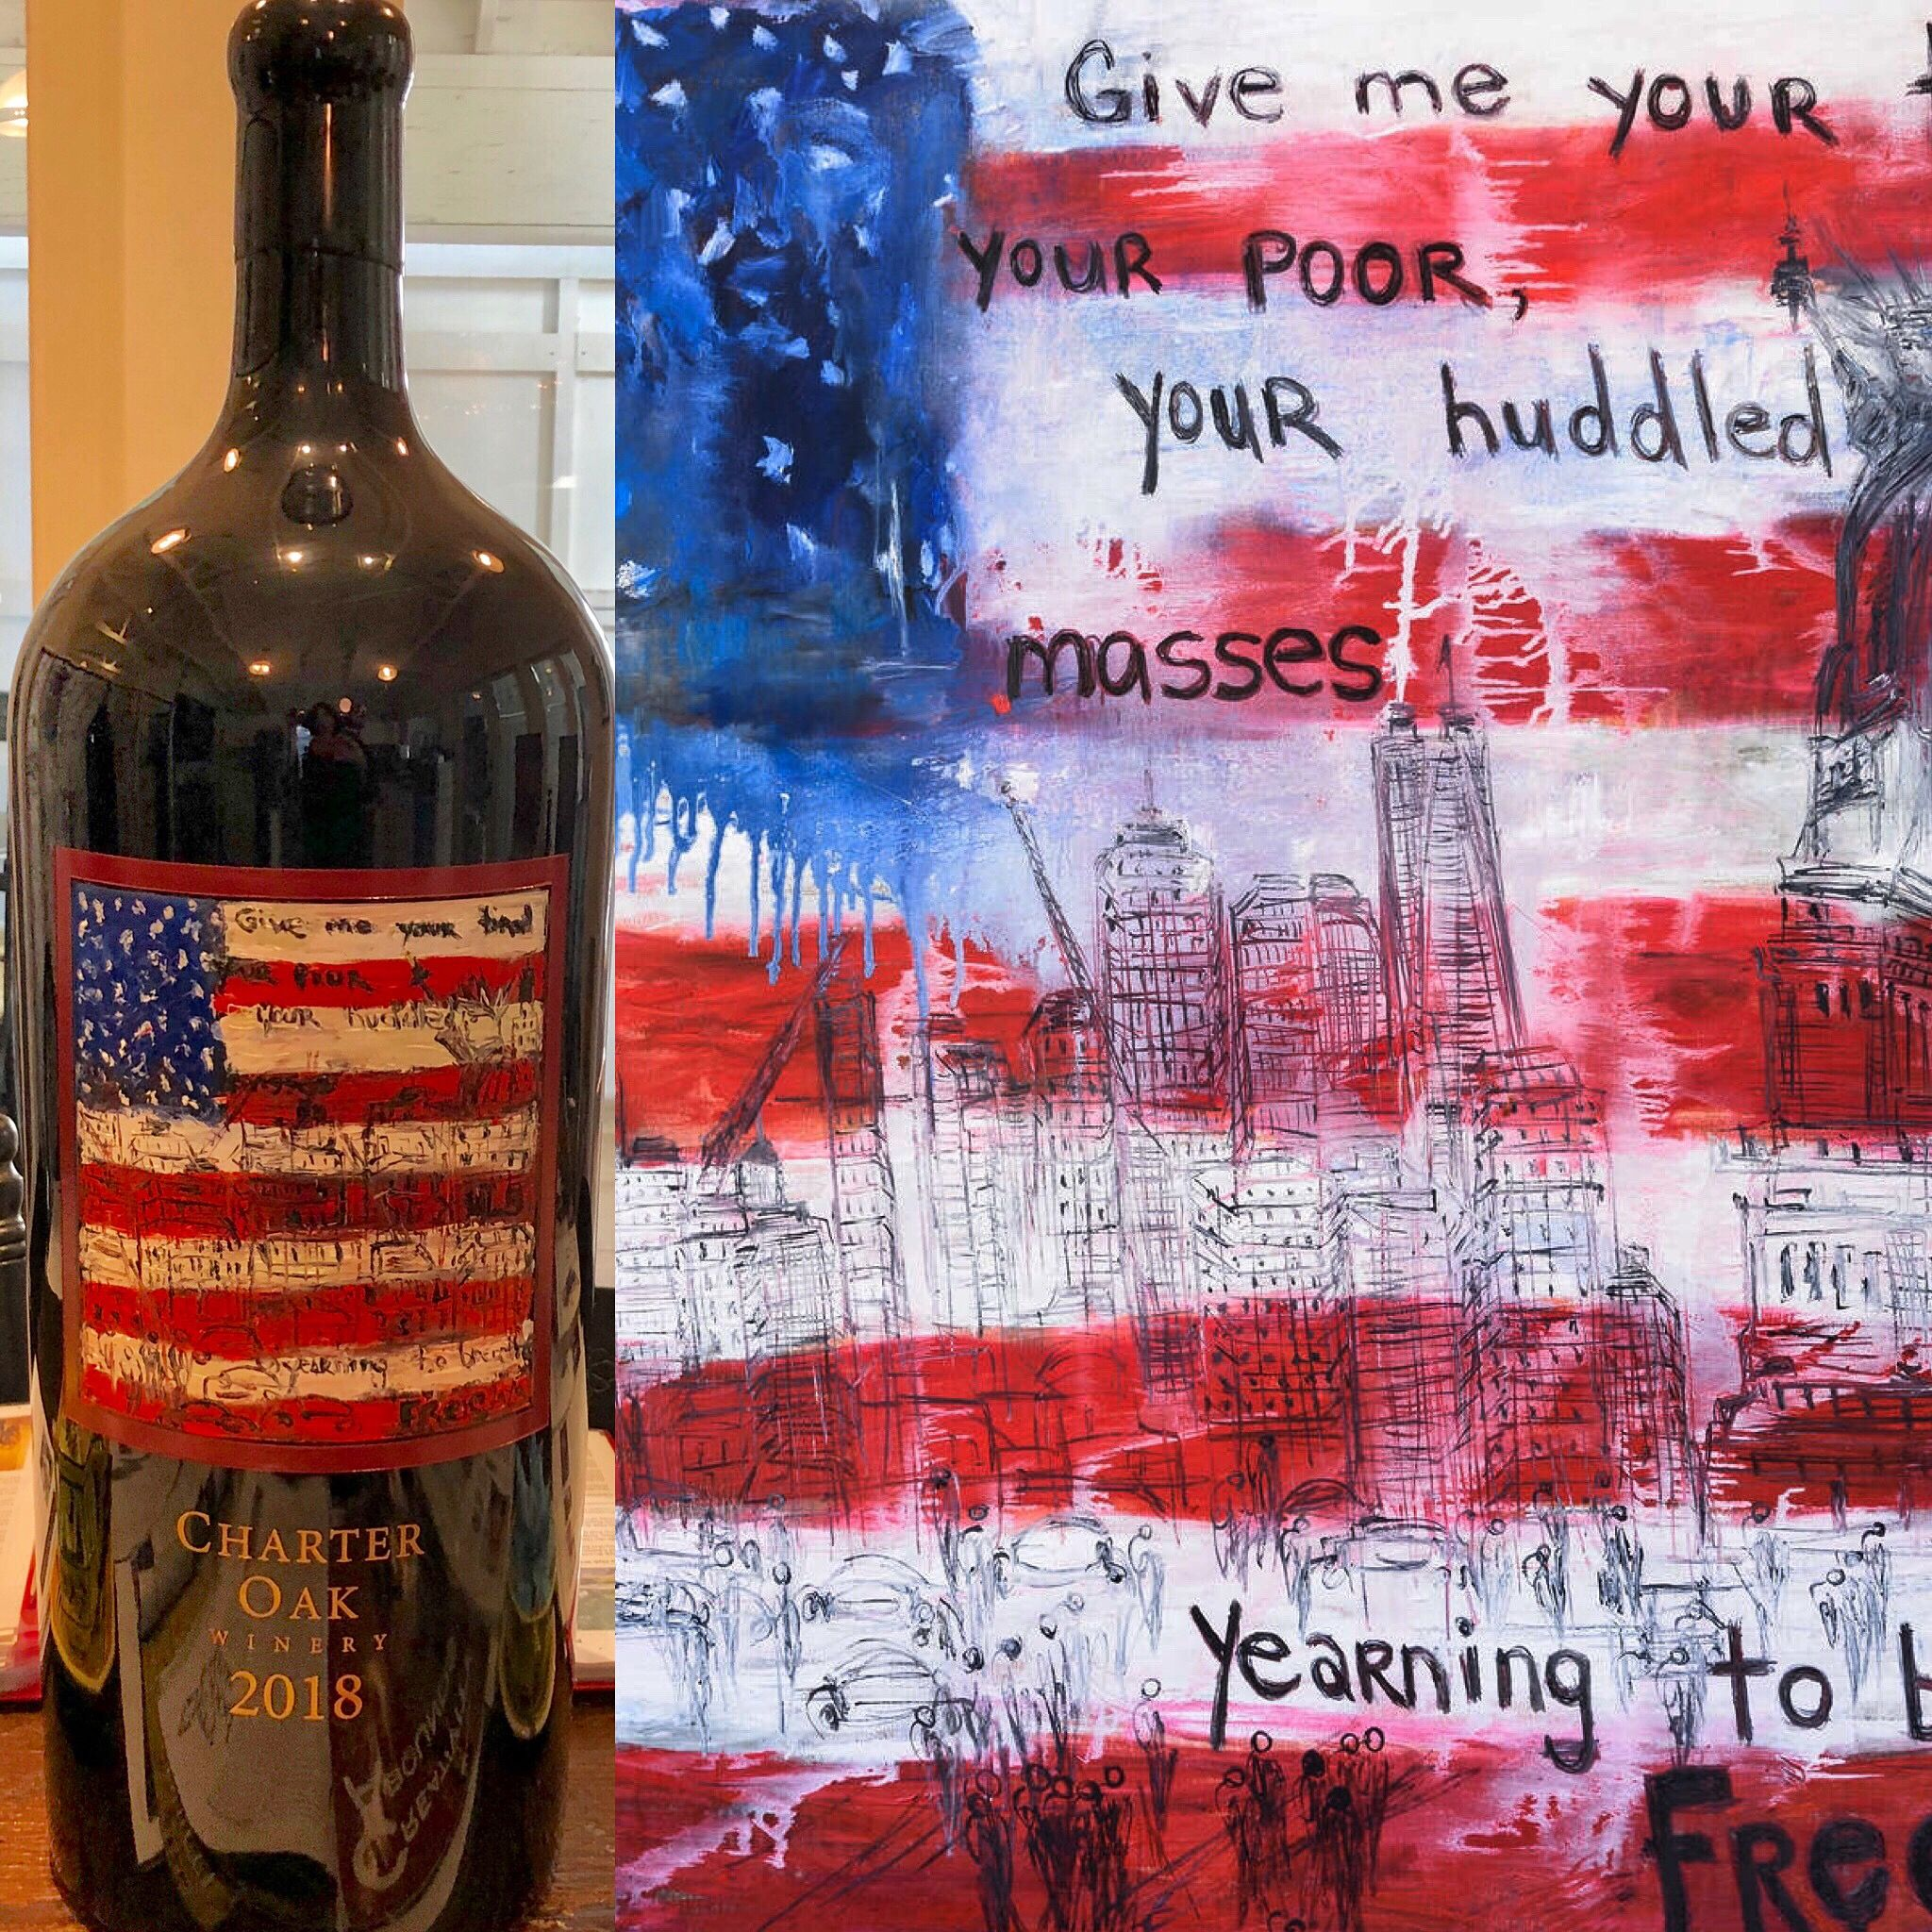 Finished Painting God Bless The Children Oil On Canvas 48 X 48 Etched And Painted Charter Oak Wine Bottle 12l One Ca Wine Bottle Cabernet Sauvignon Bottle